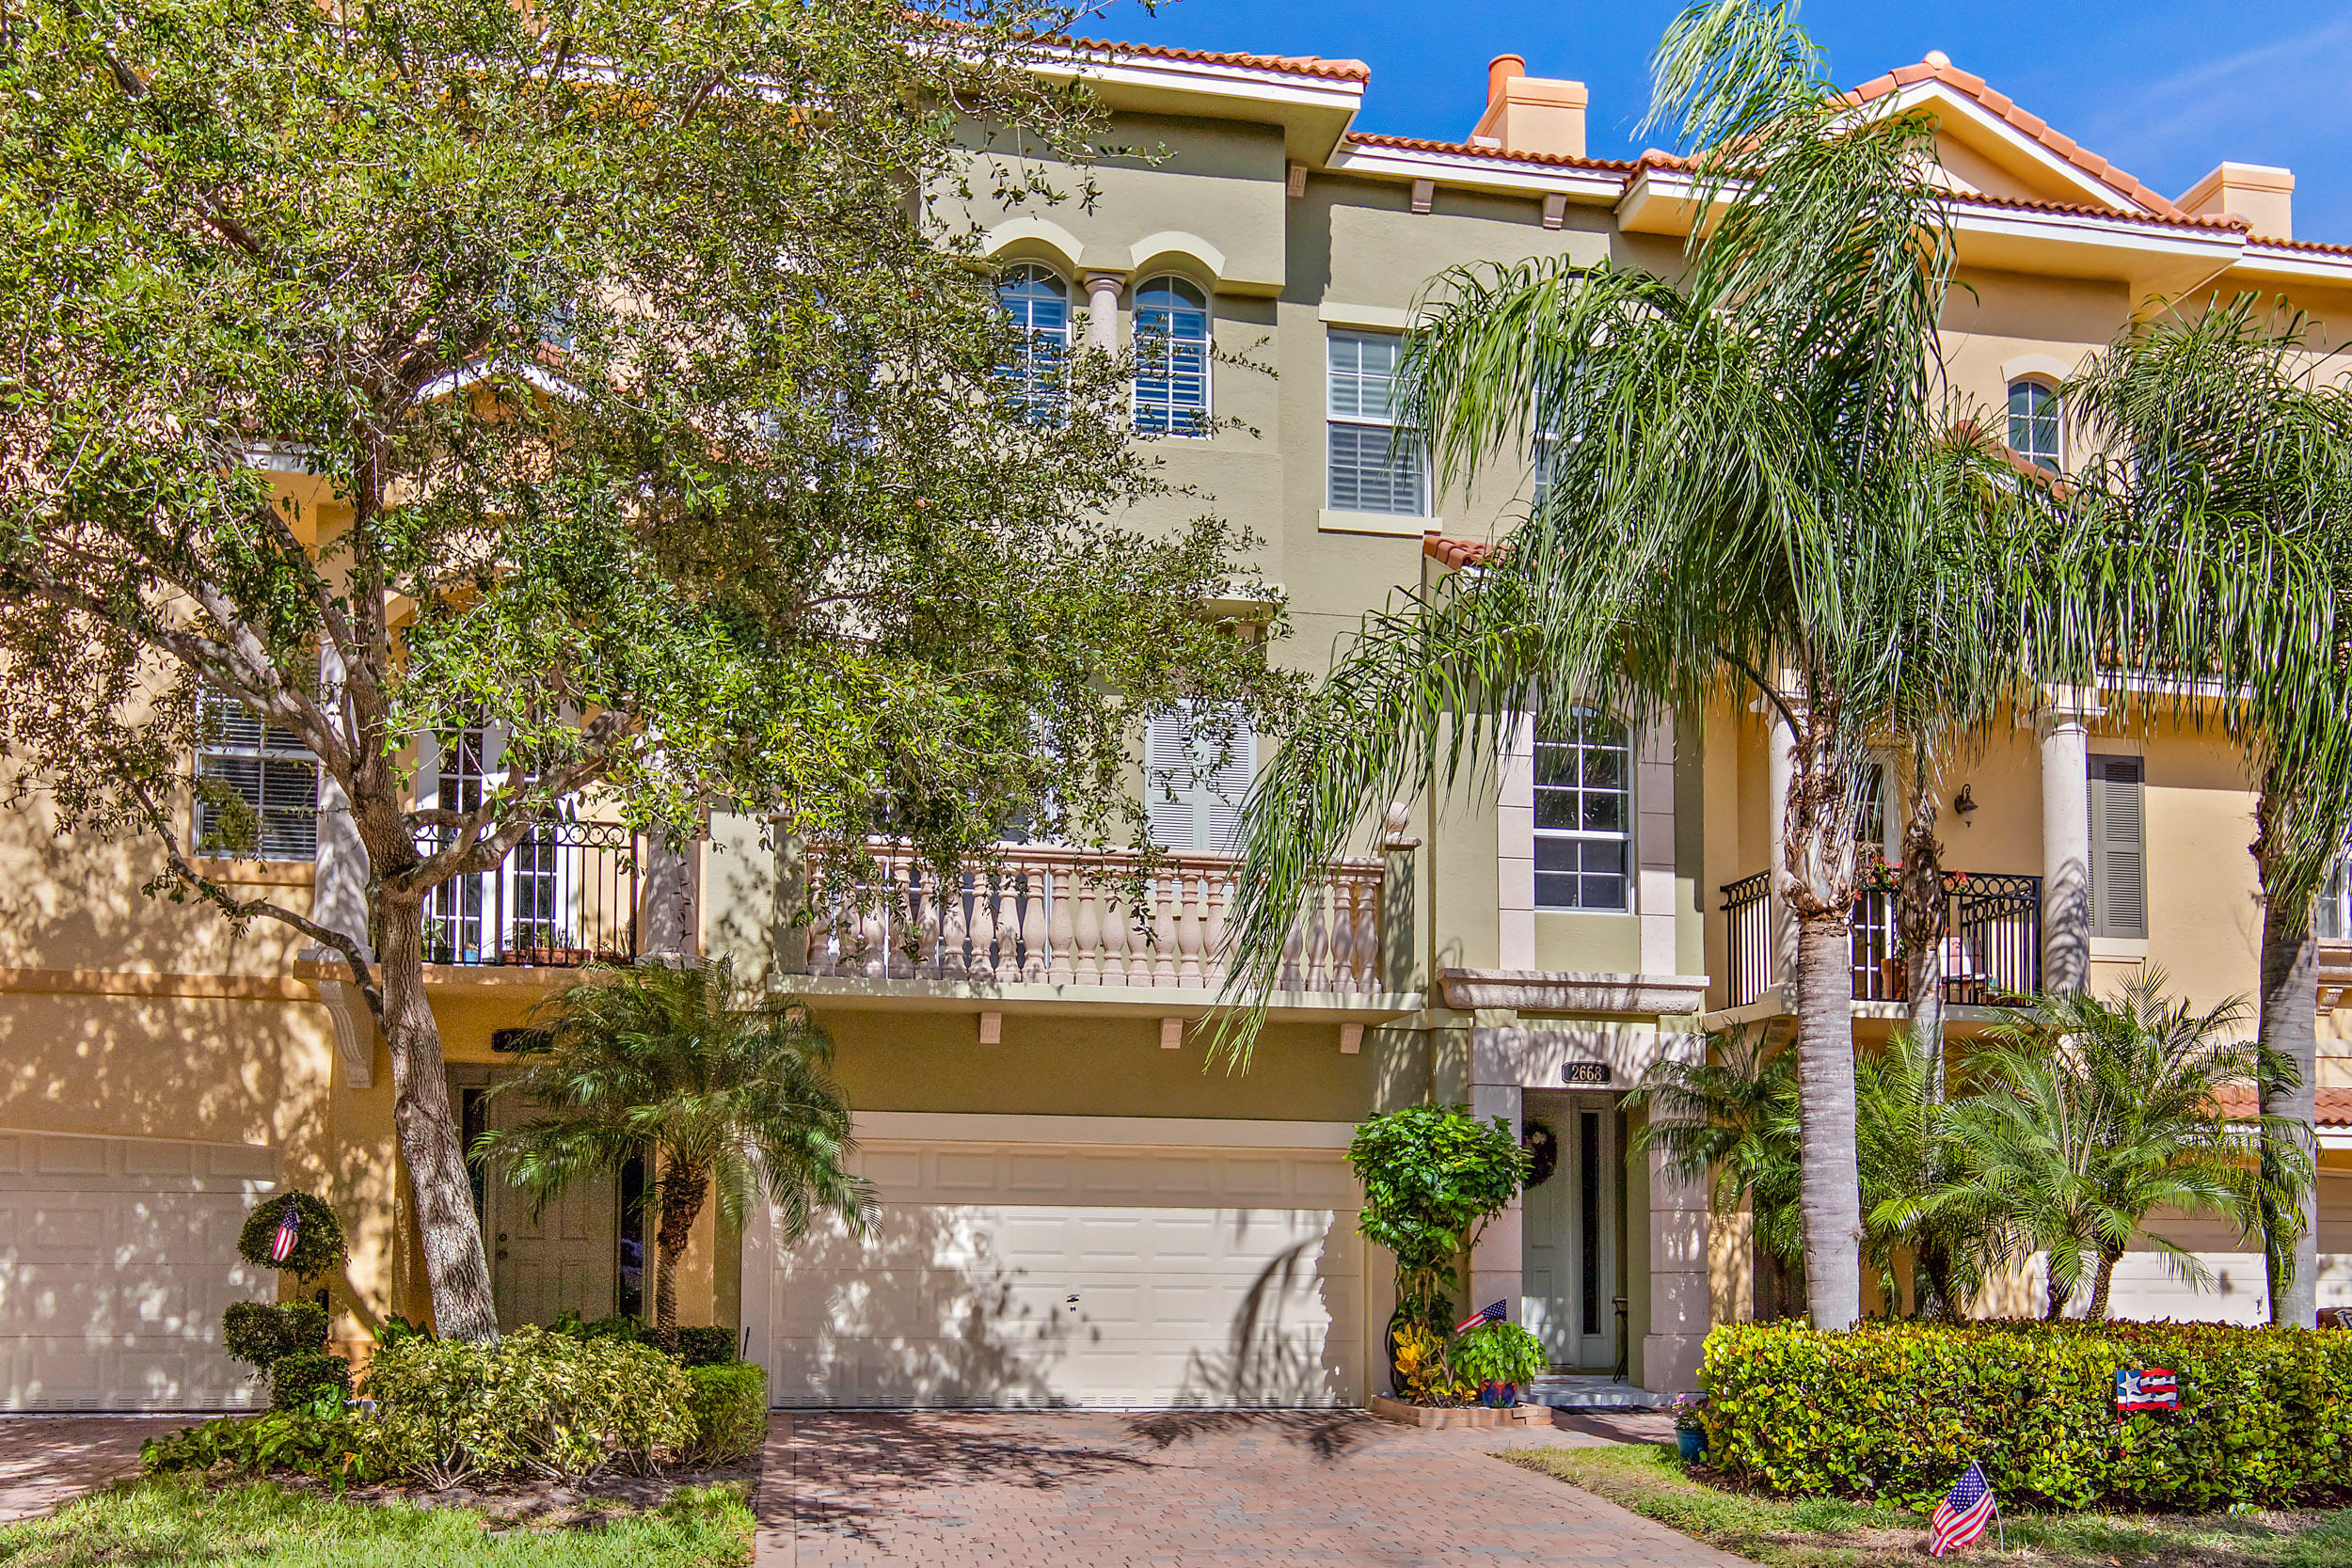 New Home for sale at 2668 Ravella Lane in Palm Beach Gardens